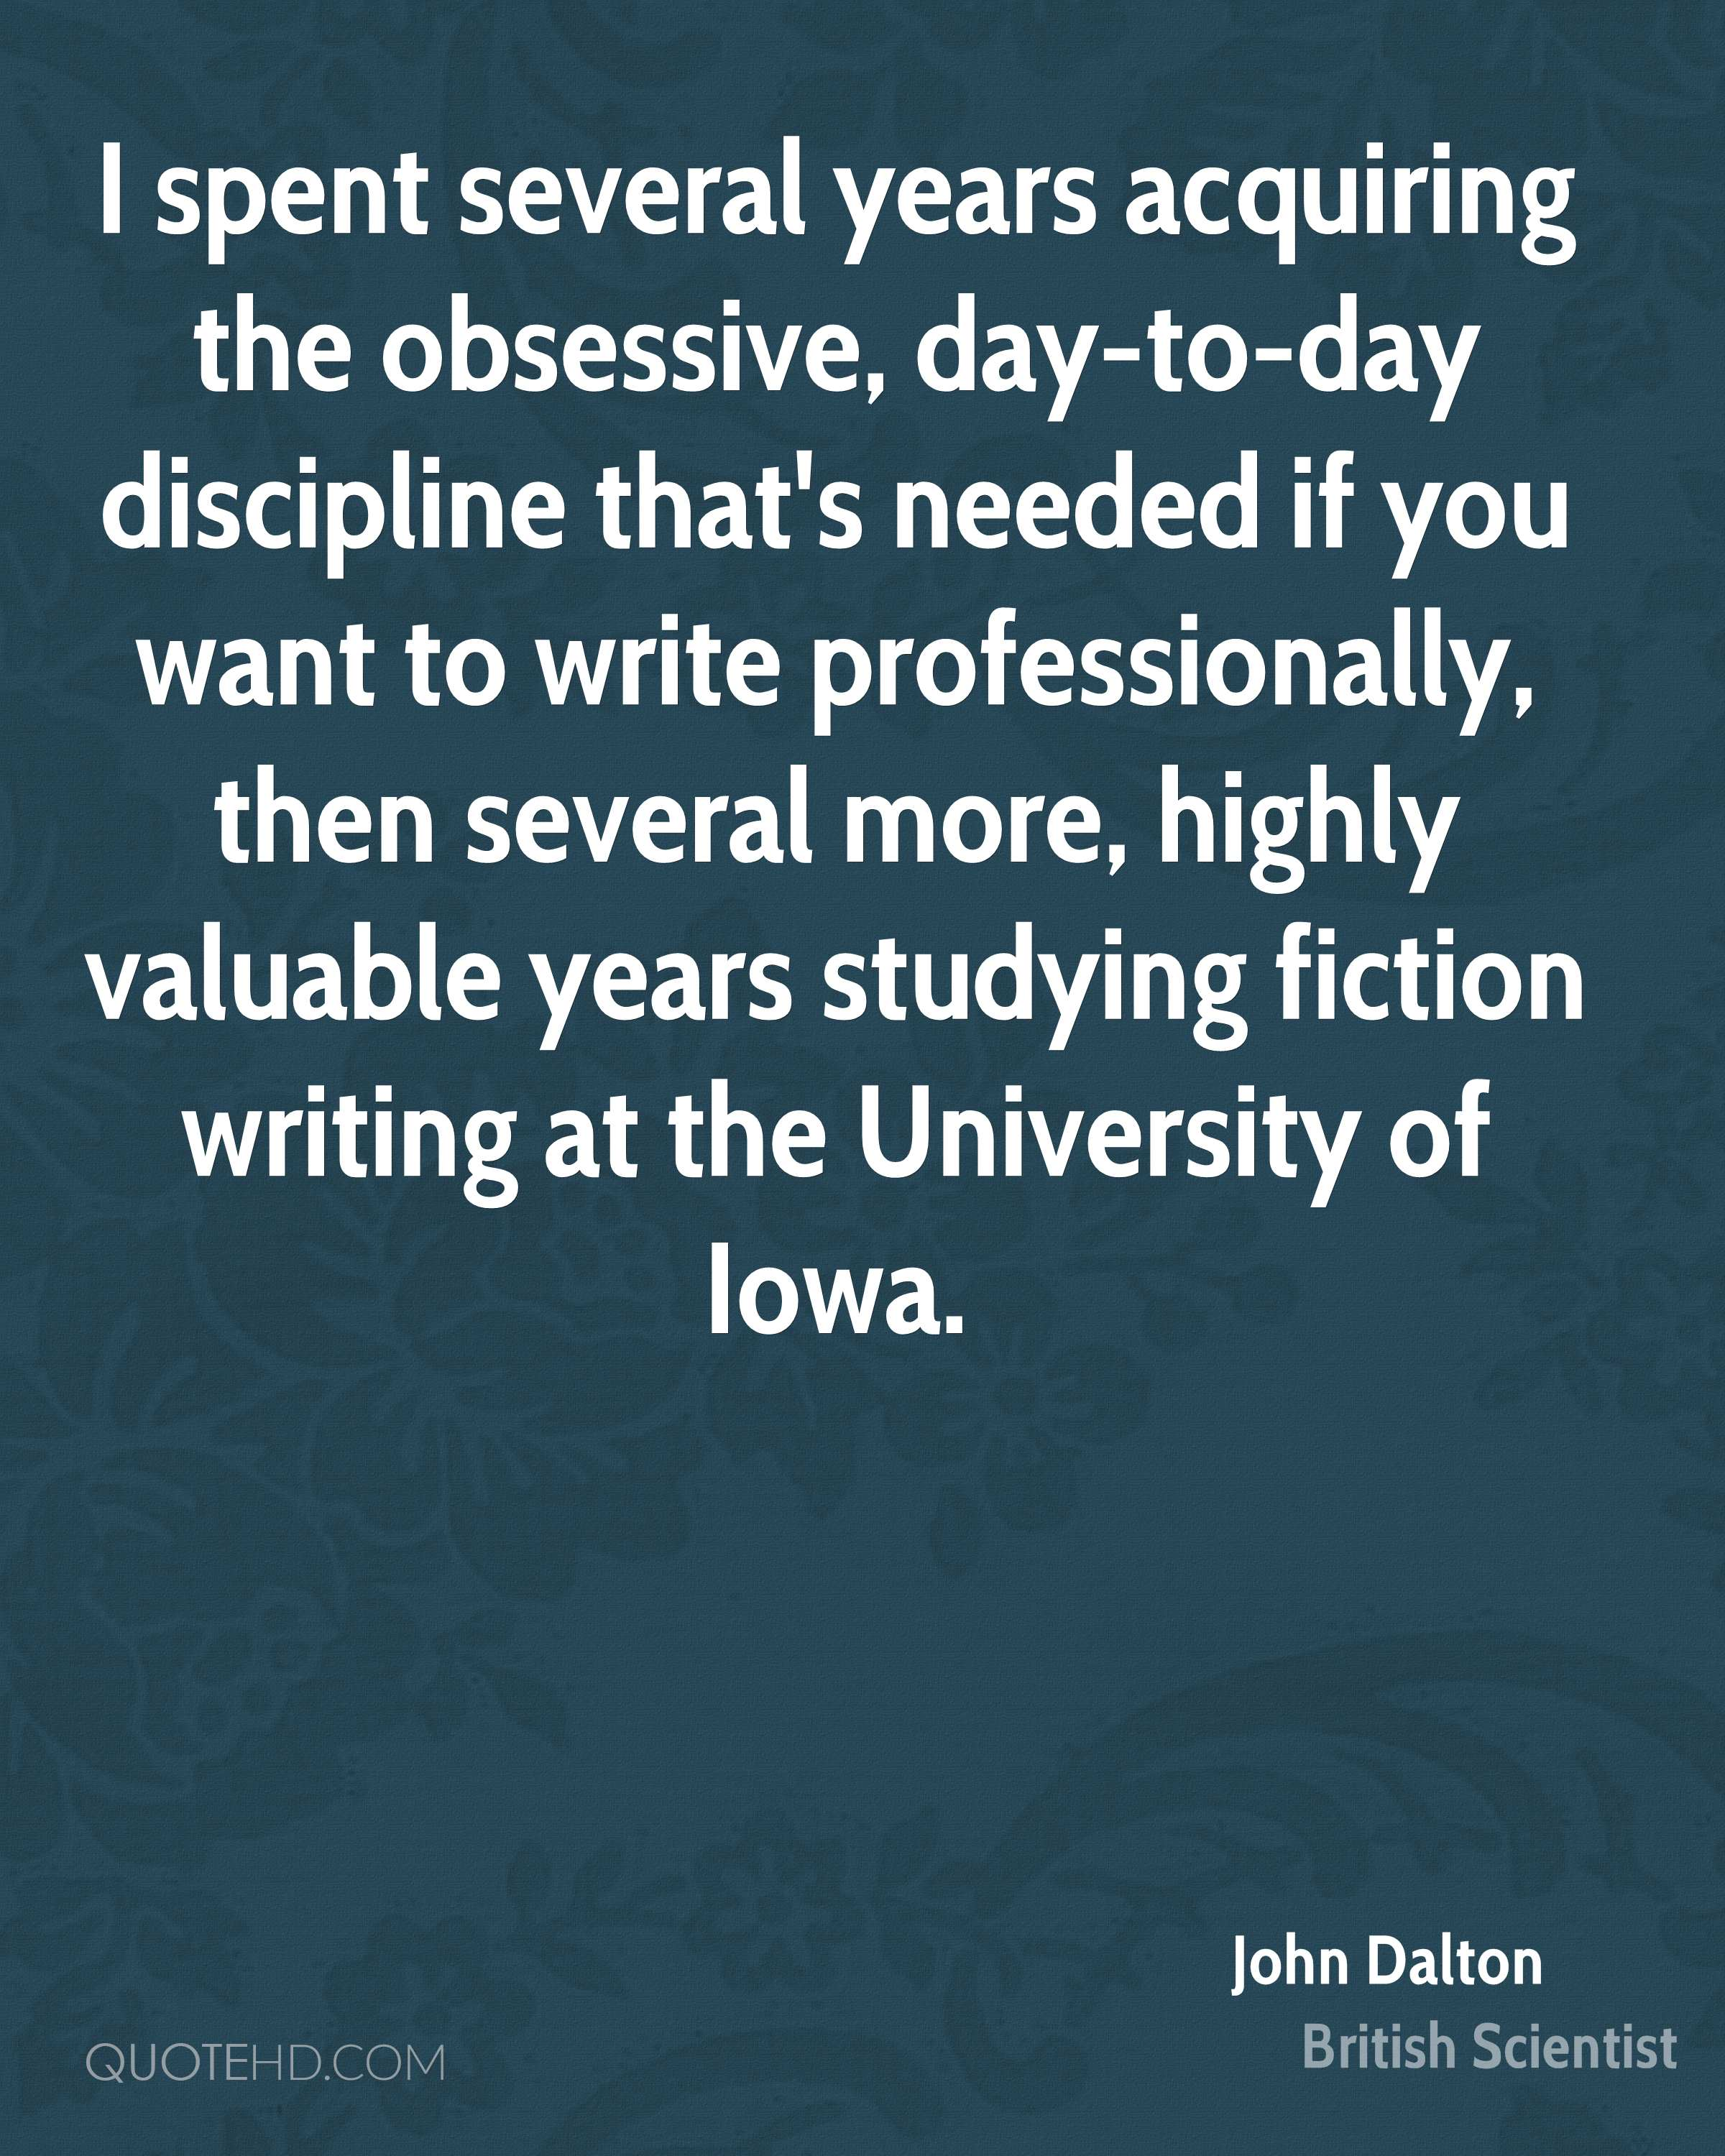 I spent several years acquiring the obsessive, day-to-day discipline that's needed if you want to write professionally, then several more, highly valuable years studying fiction writing at the University of Iowa.